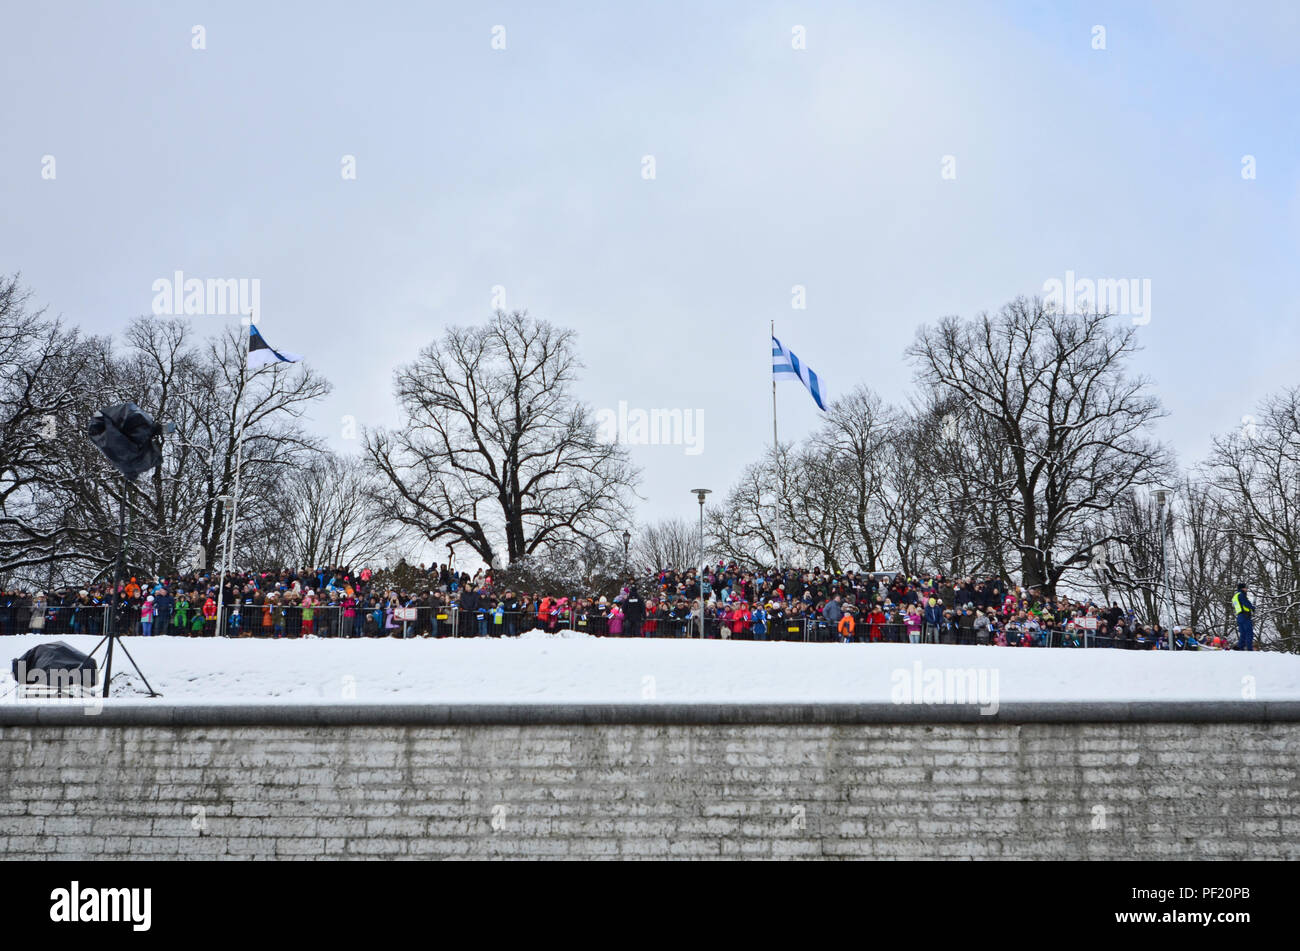 Thousands flood to the hillside, sidewalks, windows and roof tops around Freedom Square to watch the Estonian Independence Day ceremony and parade to celebrate their country's 98th year of freedom in Tallinn, Estonia, Feb. 24, 2016. (Photo by U.S. Army Staff Sgt. Steven M. Colvin/Released) - Stock Image